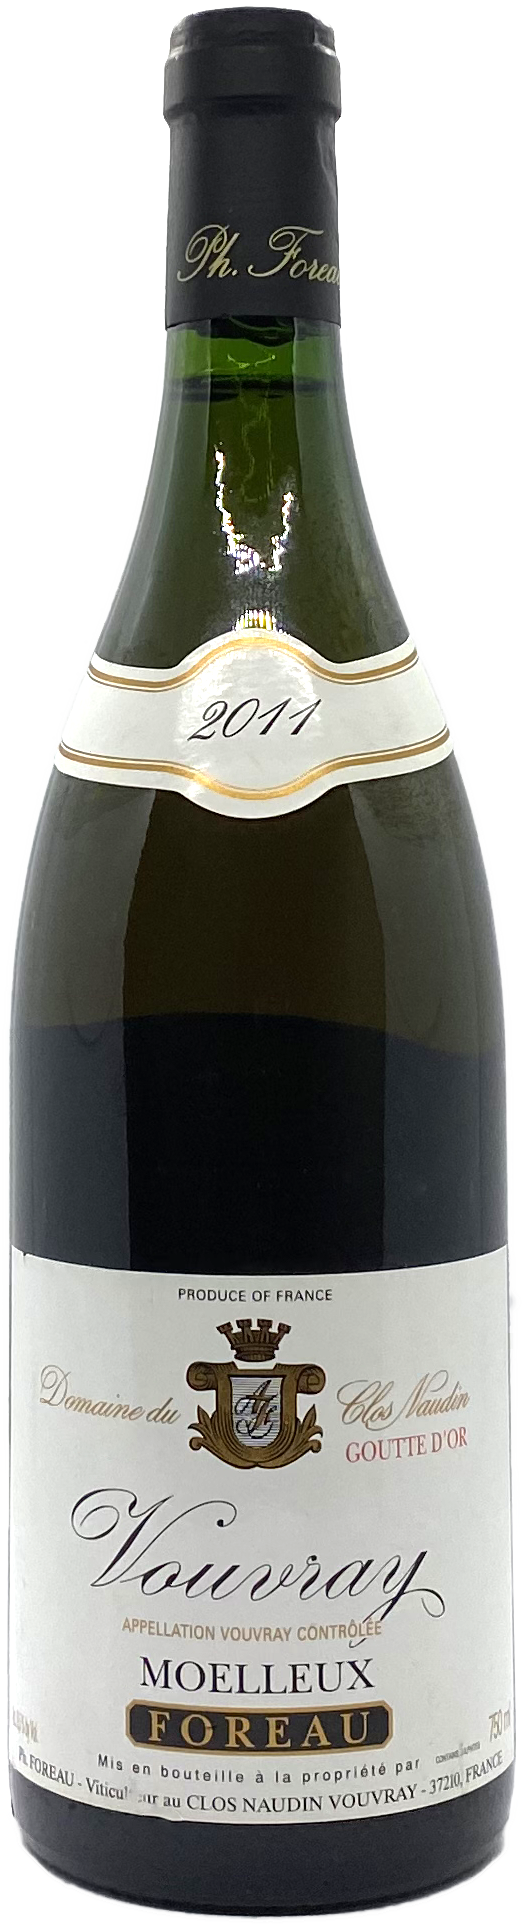 Philippe Foreau Goutte d'Or Vouvray Moelleux 2011